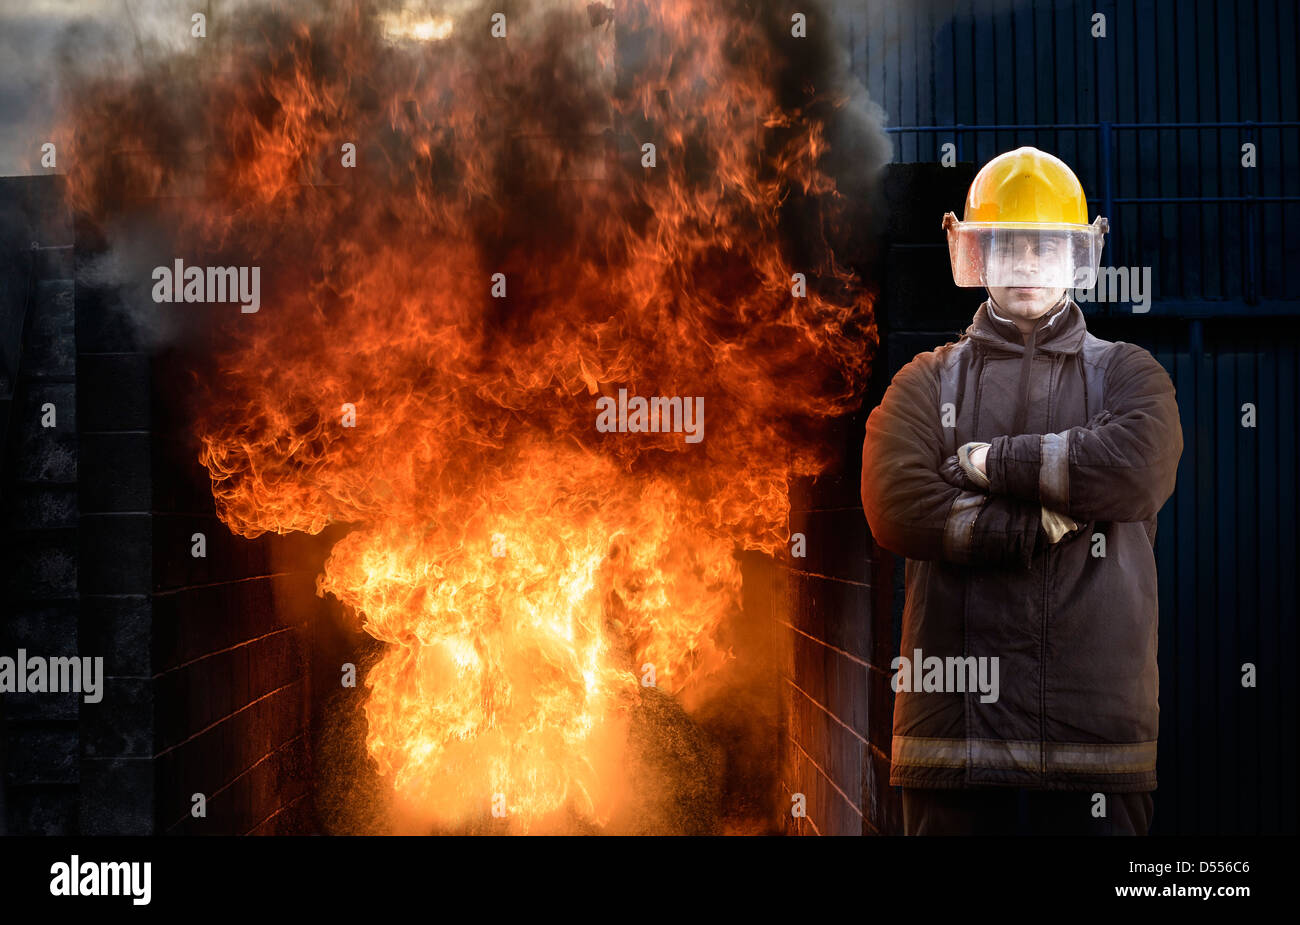 Firefighter standing by blaze - Stock Image